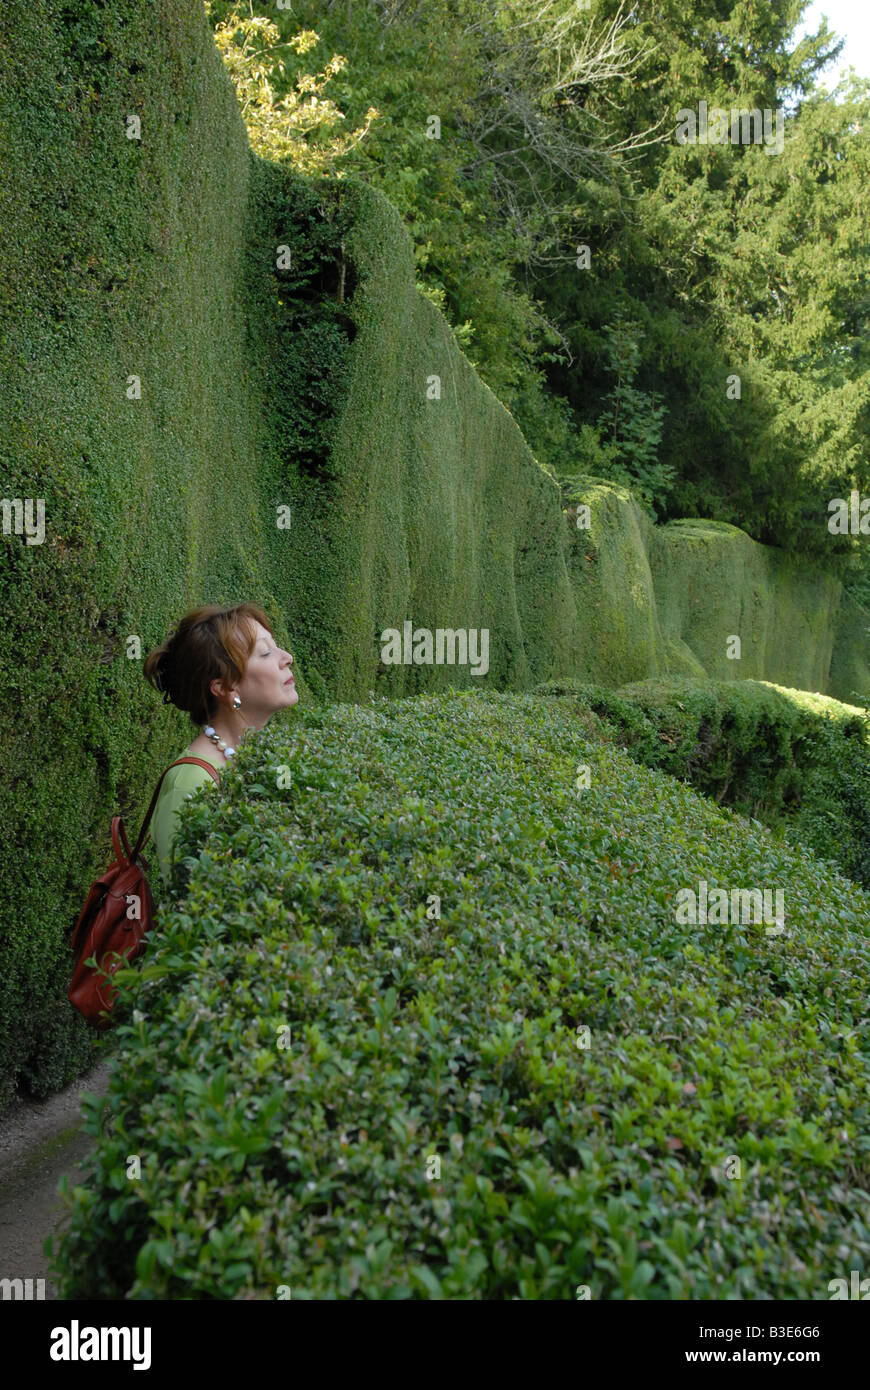 Woman peering over a high hedge uk - Stock Image